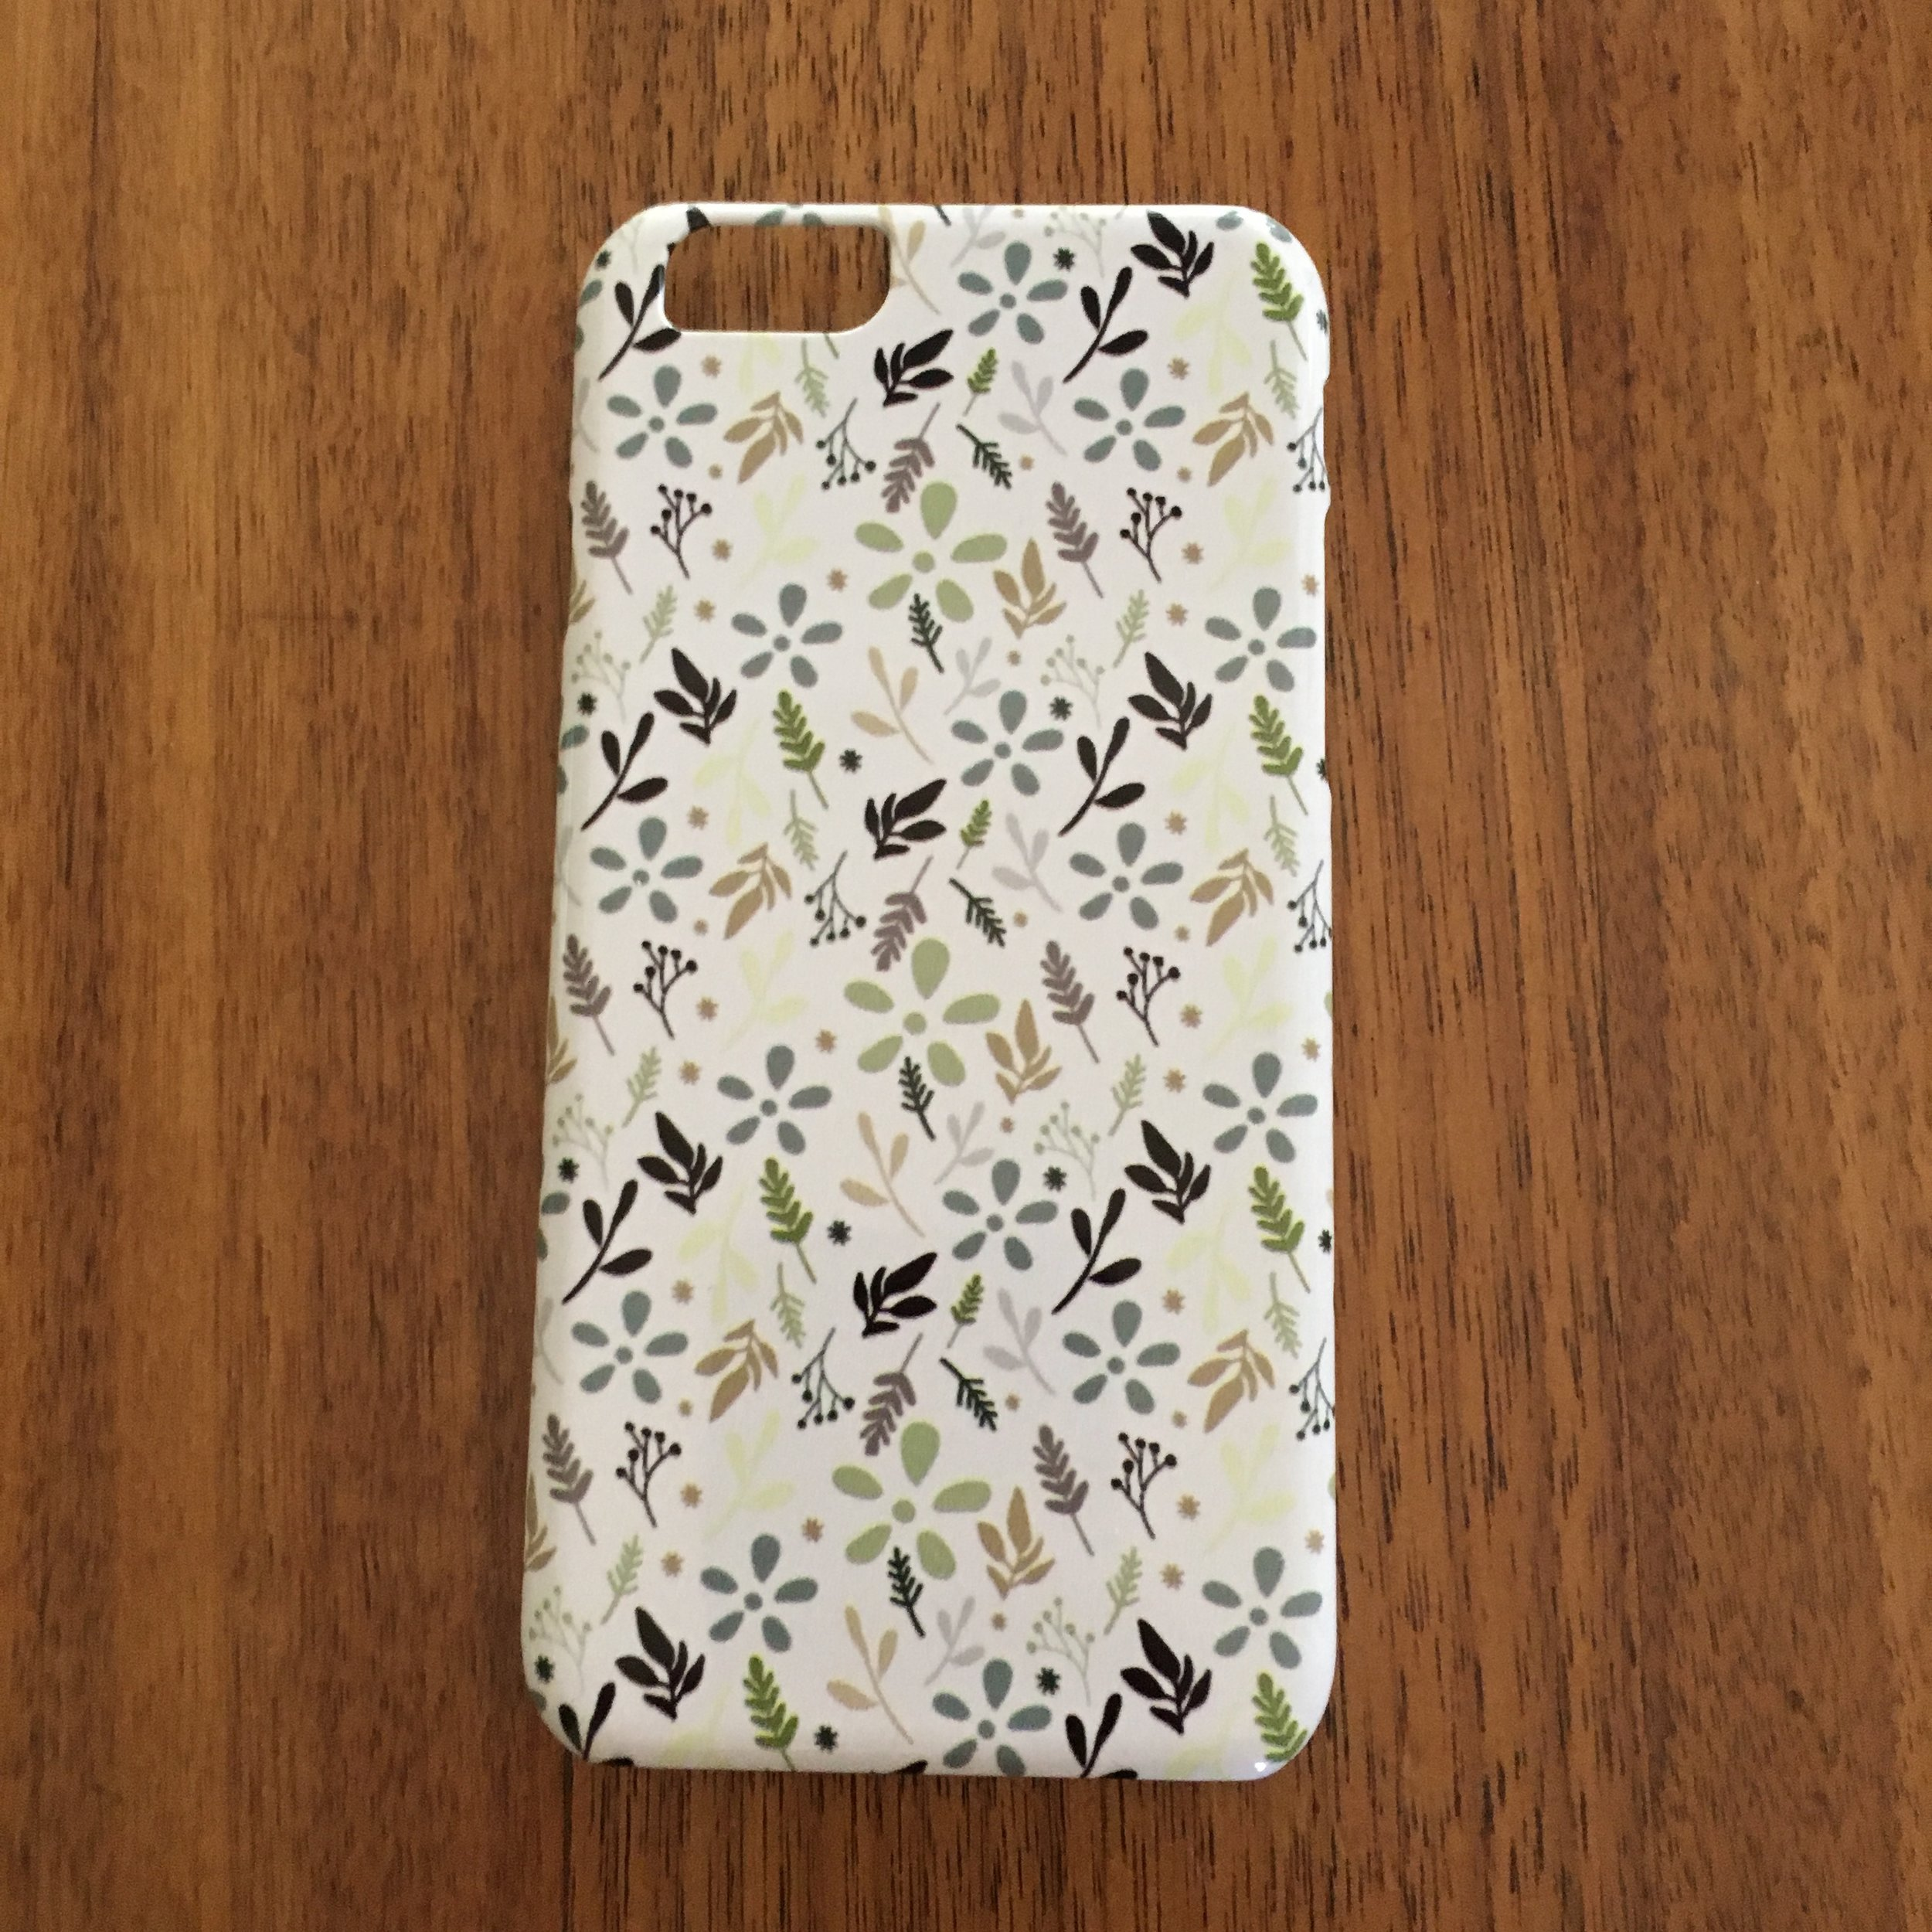 iPhone case: Tossed print